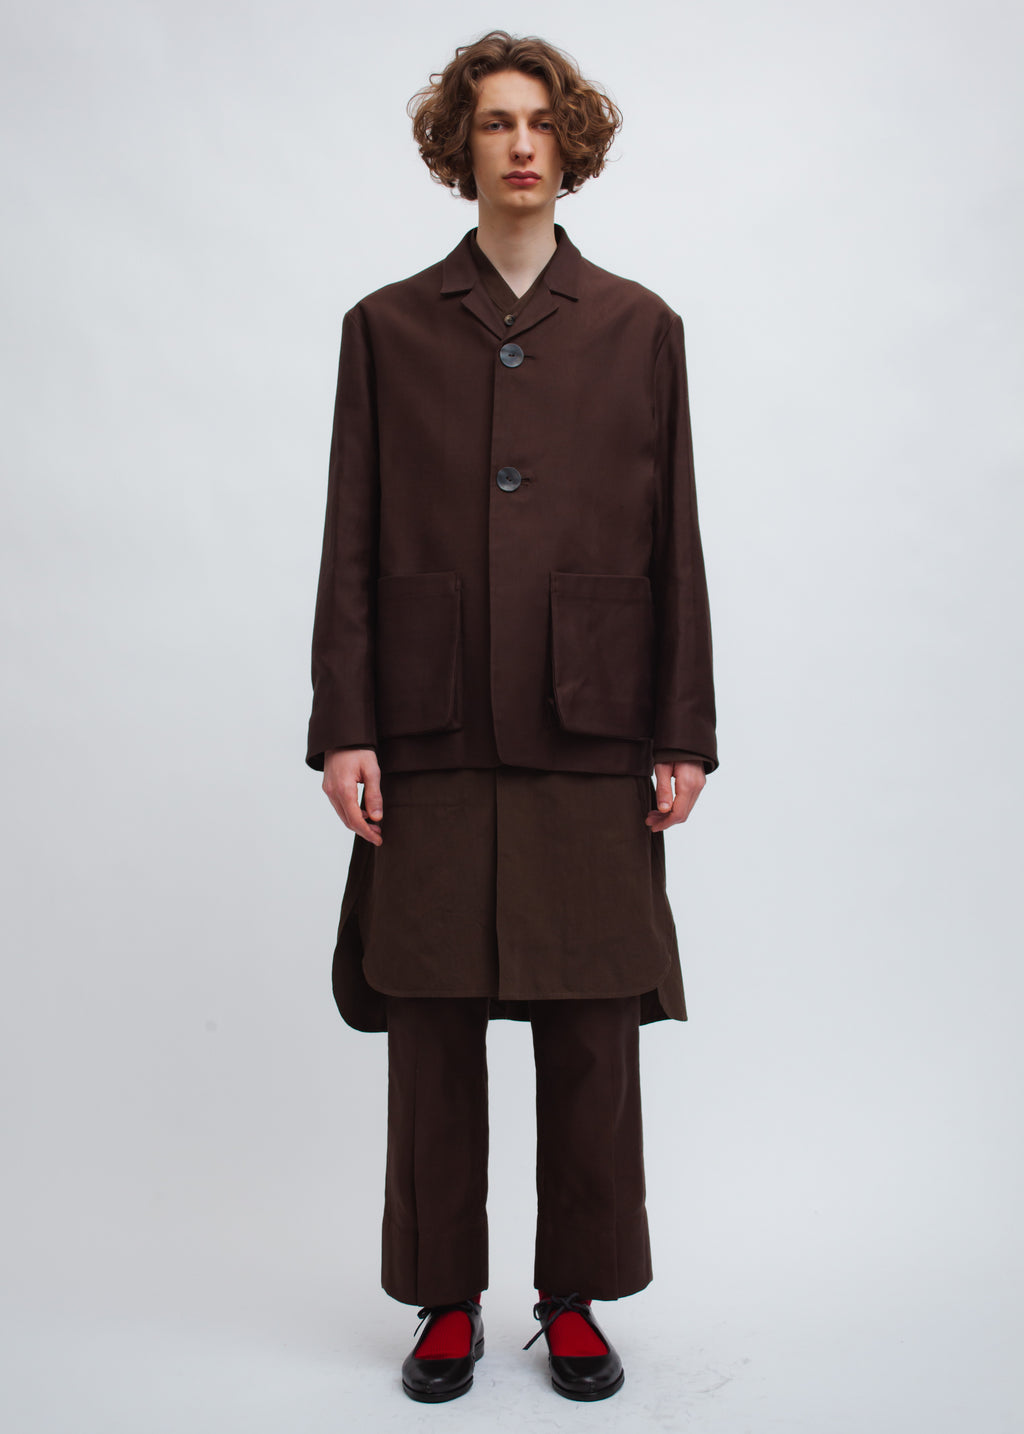 Omar Afridi Box Jacket (German Brown)